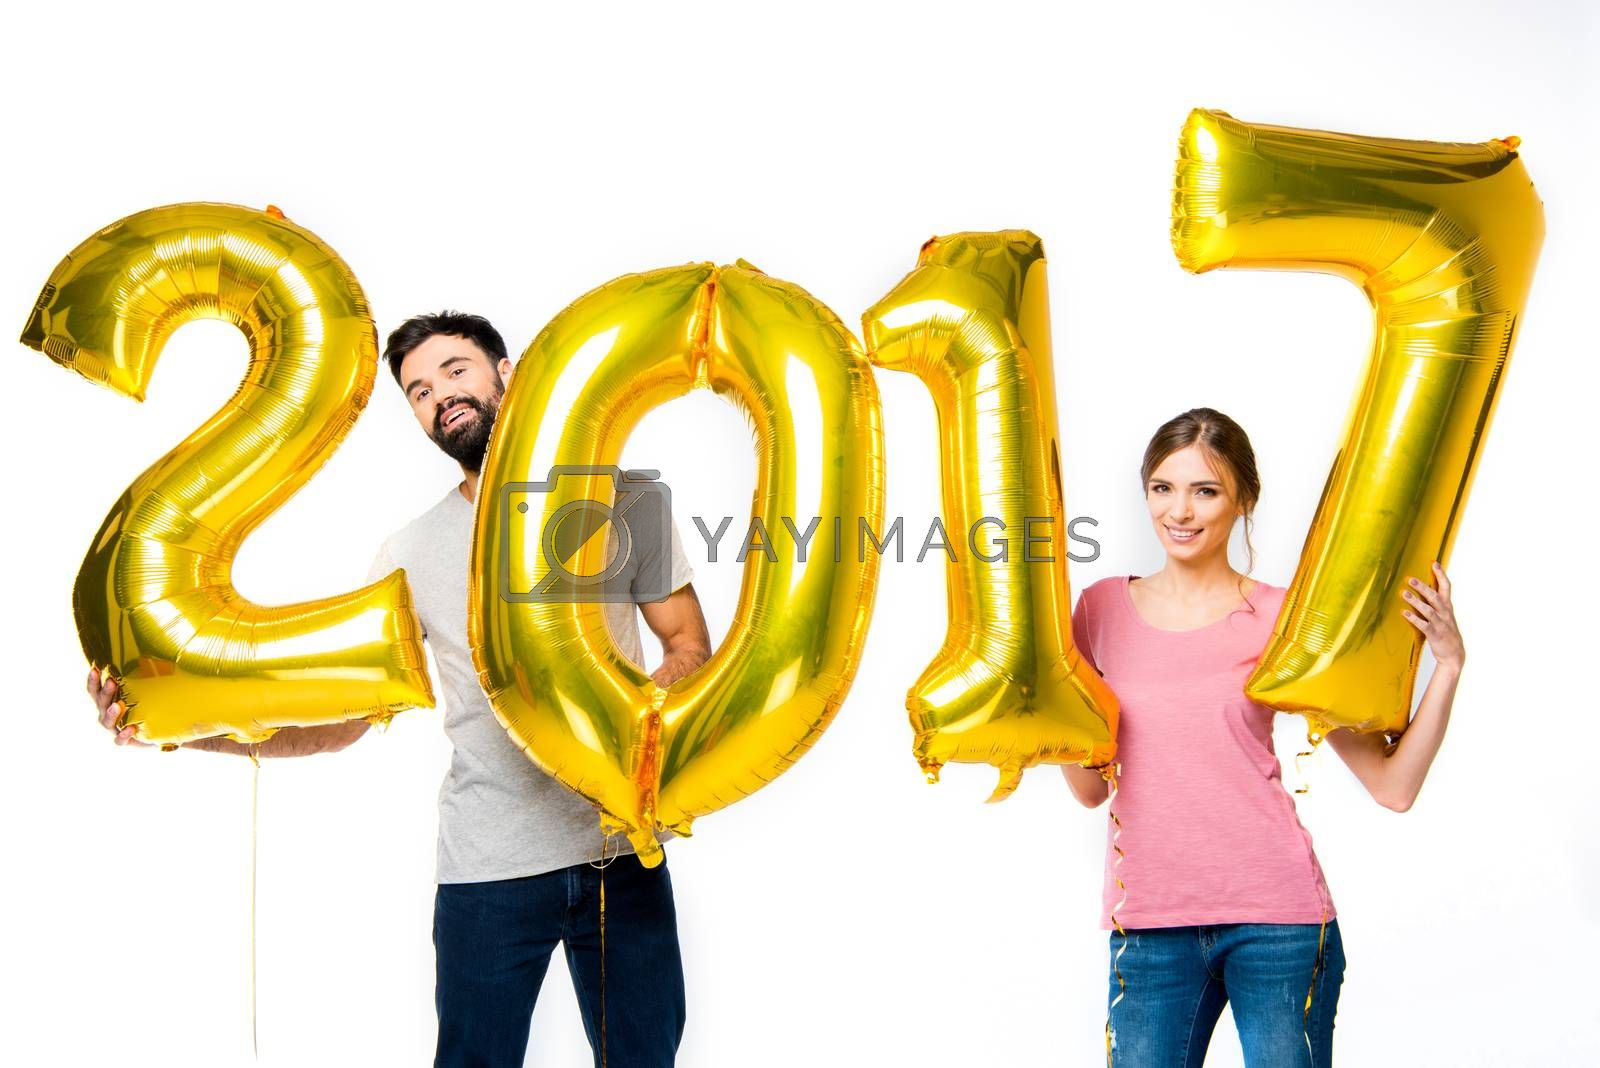 Happy couple holding golden 2017 sign balloons and looking at camera on white